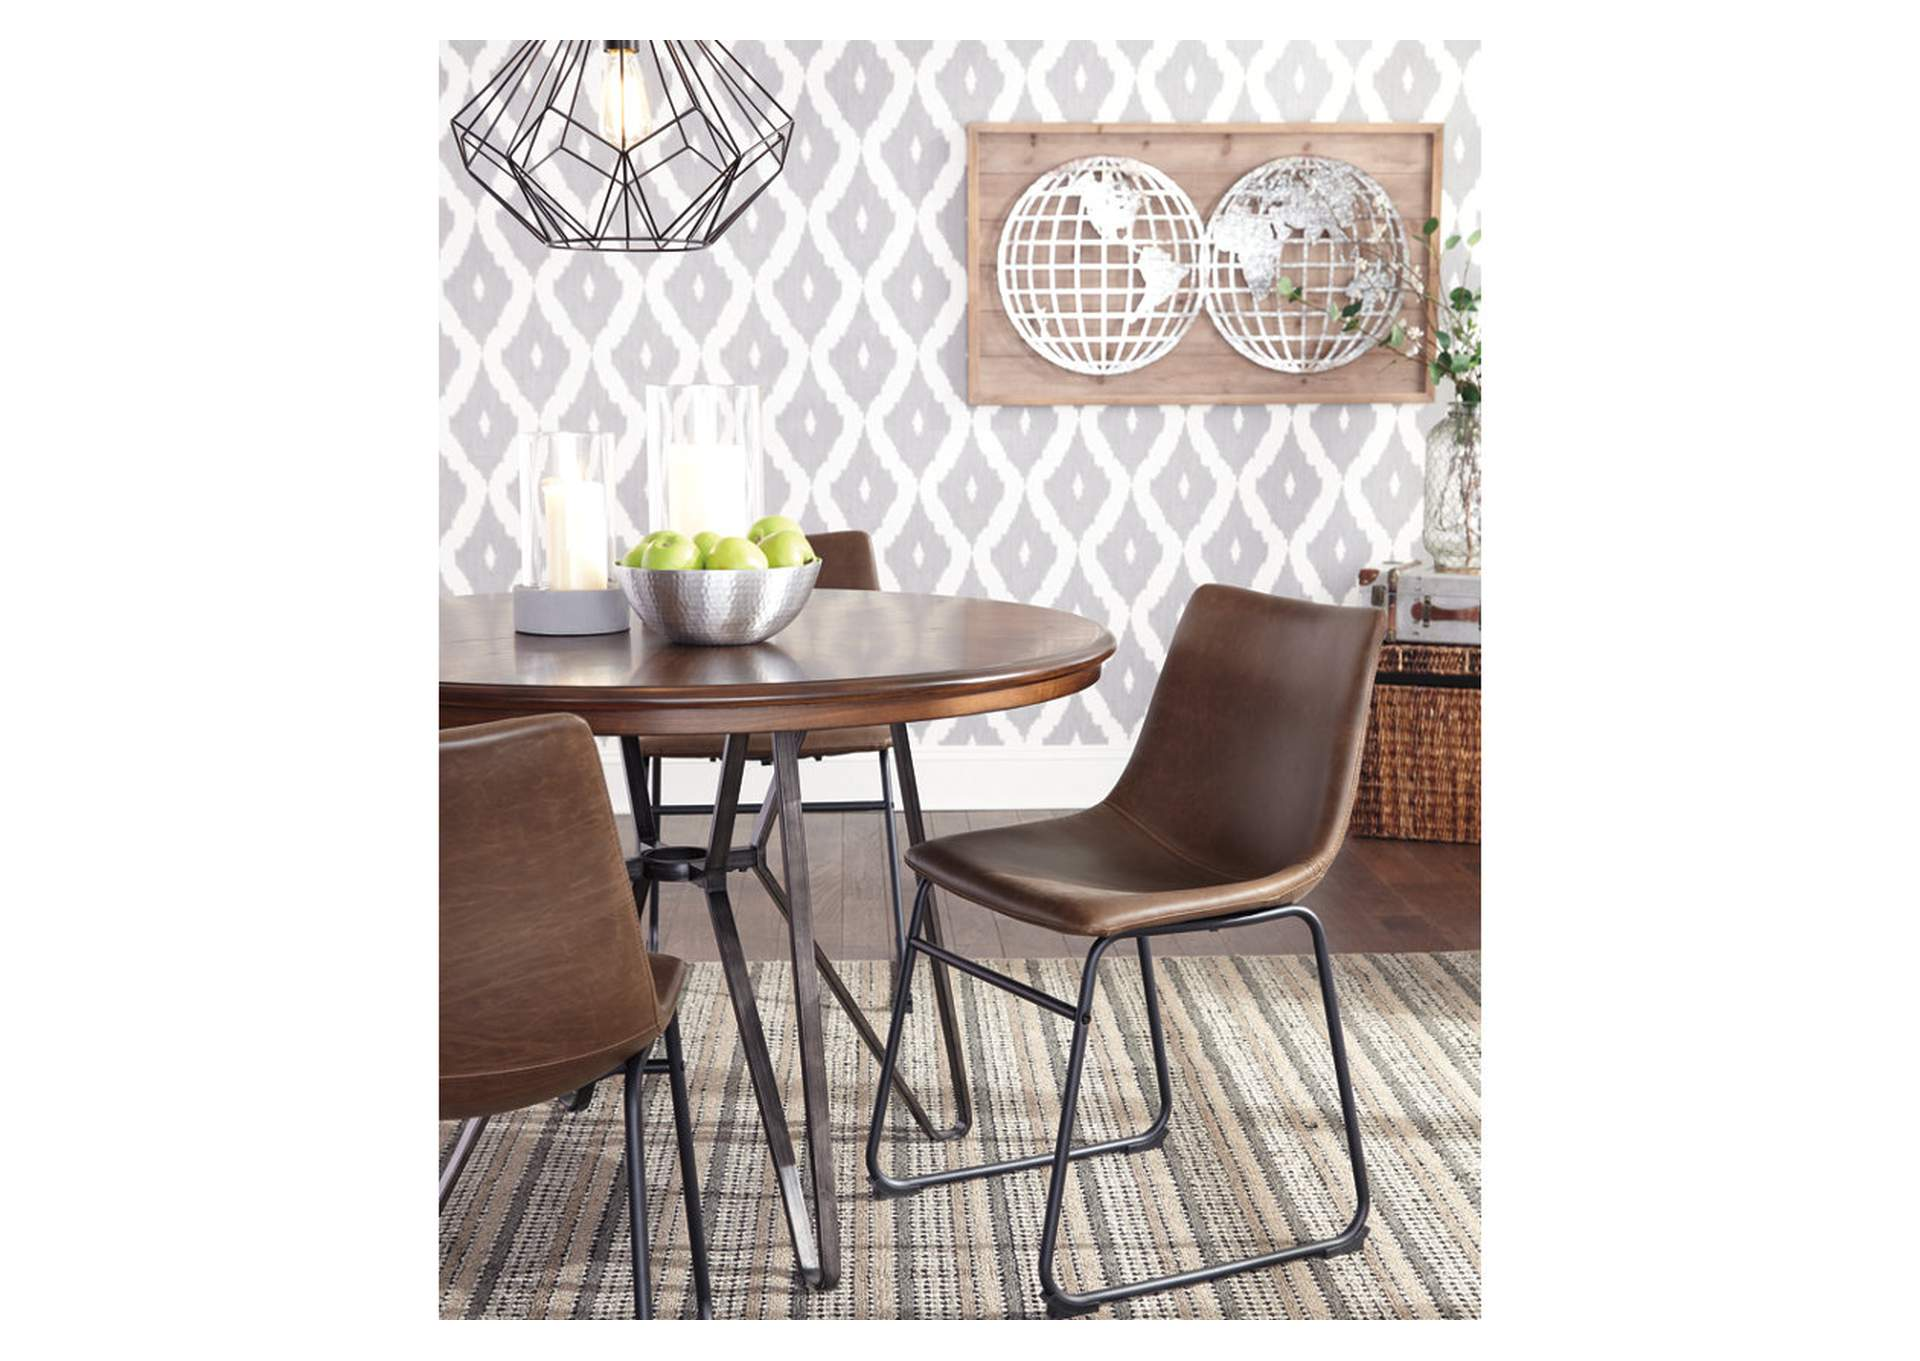 Centiar Single Dining Room Chair,Signature Design By Ashley